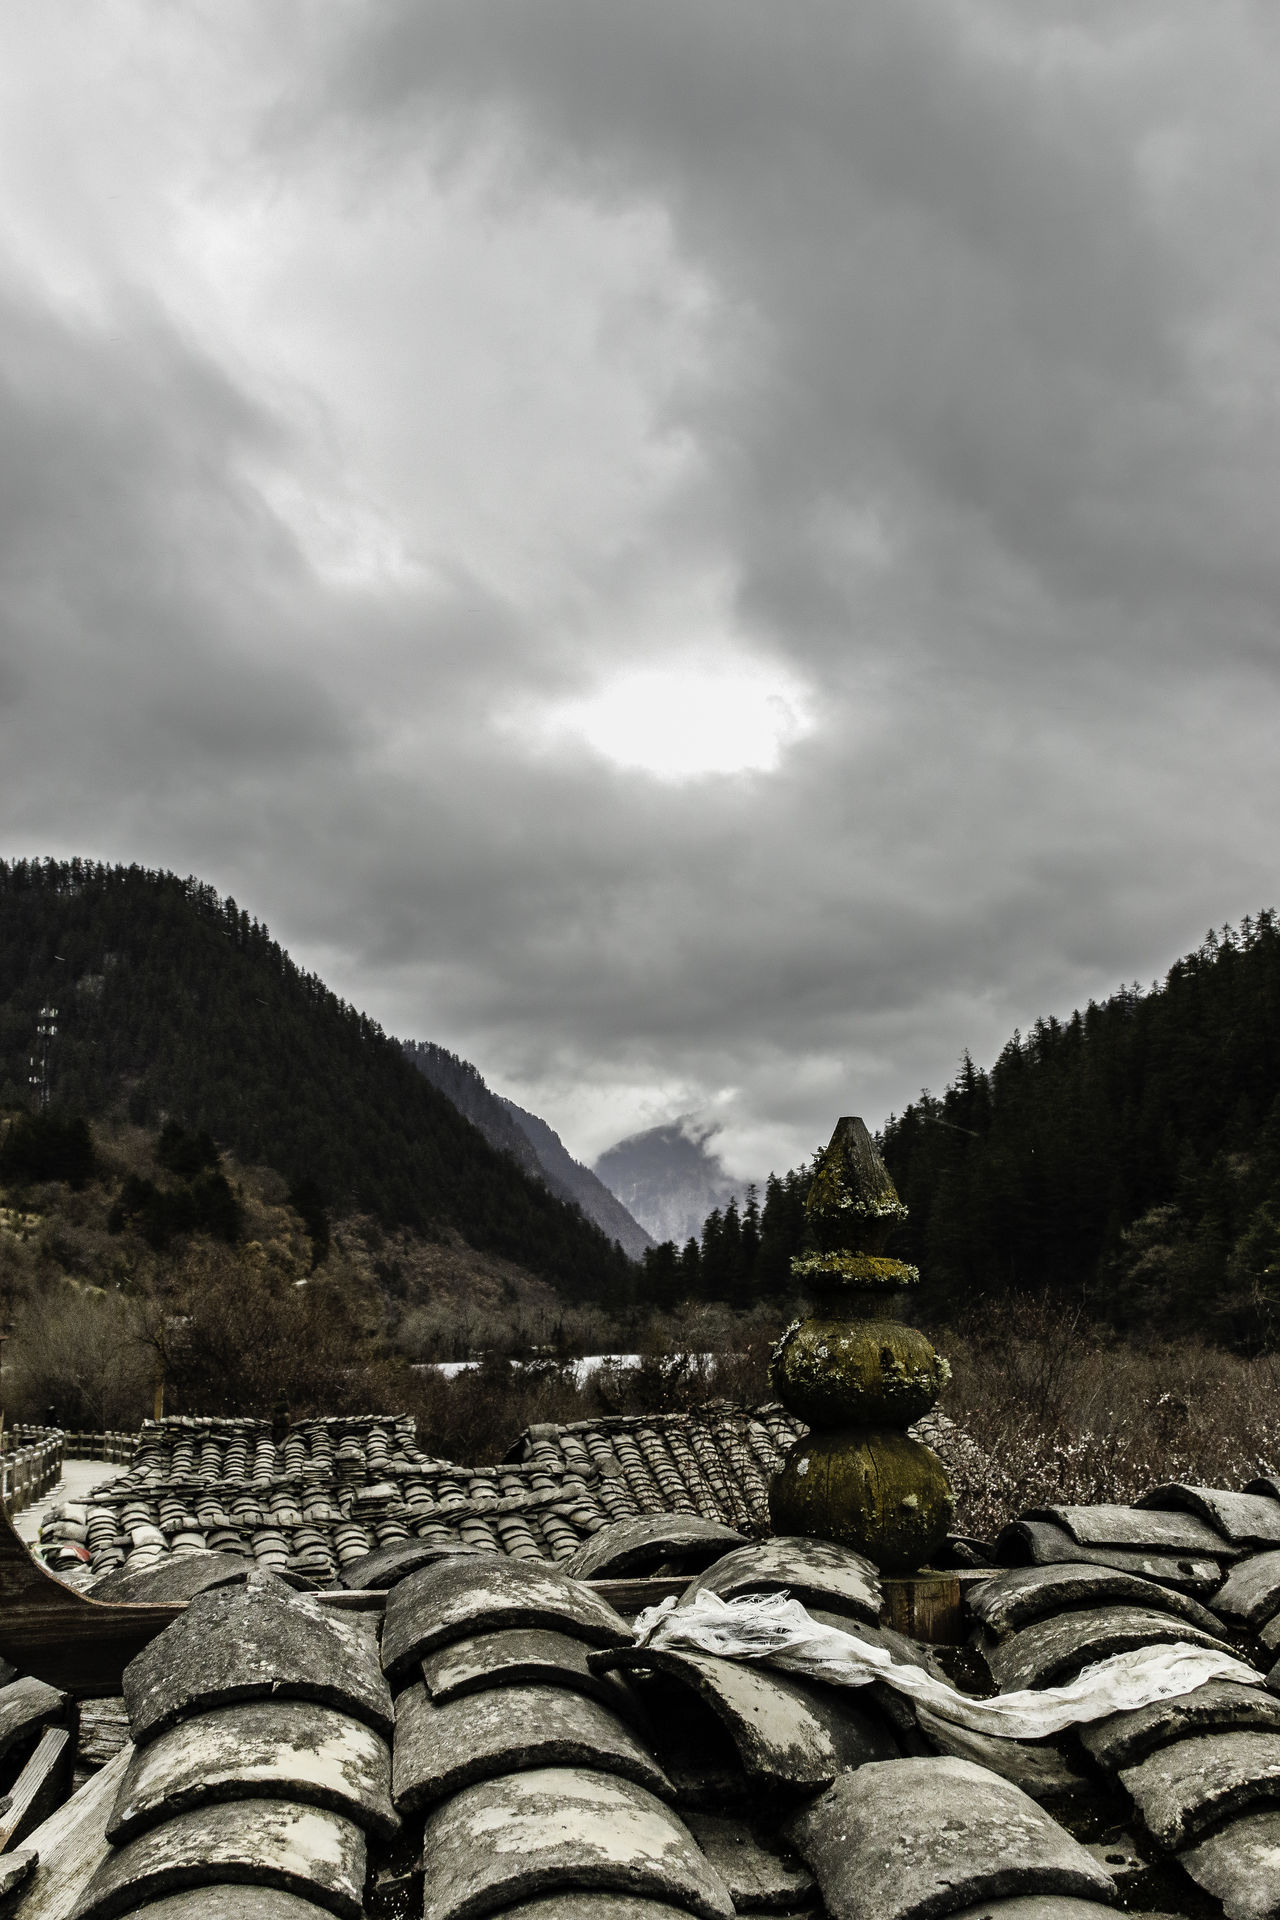 Attraction Beauty Buddhism China Cloudy Day Destination Jiuzhaigou Mountain Nature No People Outdoors Overcast Photography Rooftop Scenics Shingles Sichuan Sky Tibetan  Tourism Tourist Travel Trip Valley